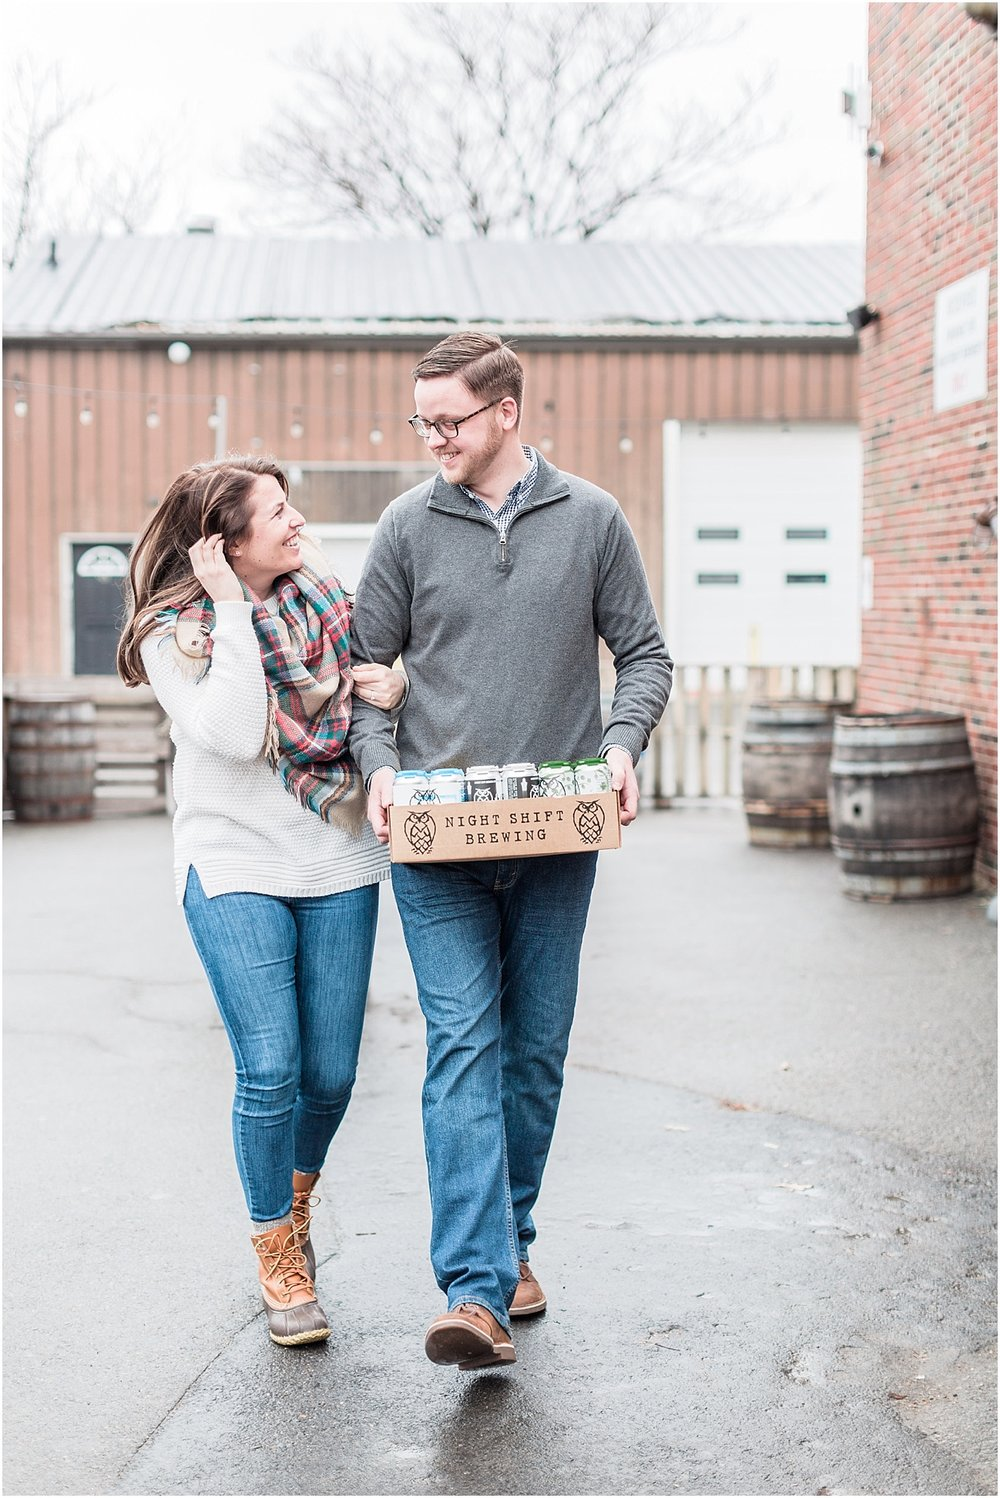 night_shift_brewing_engagement_session_boston_everett_meredith_jane_photography_photo_0009-1.jpg